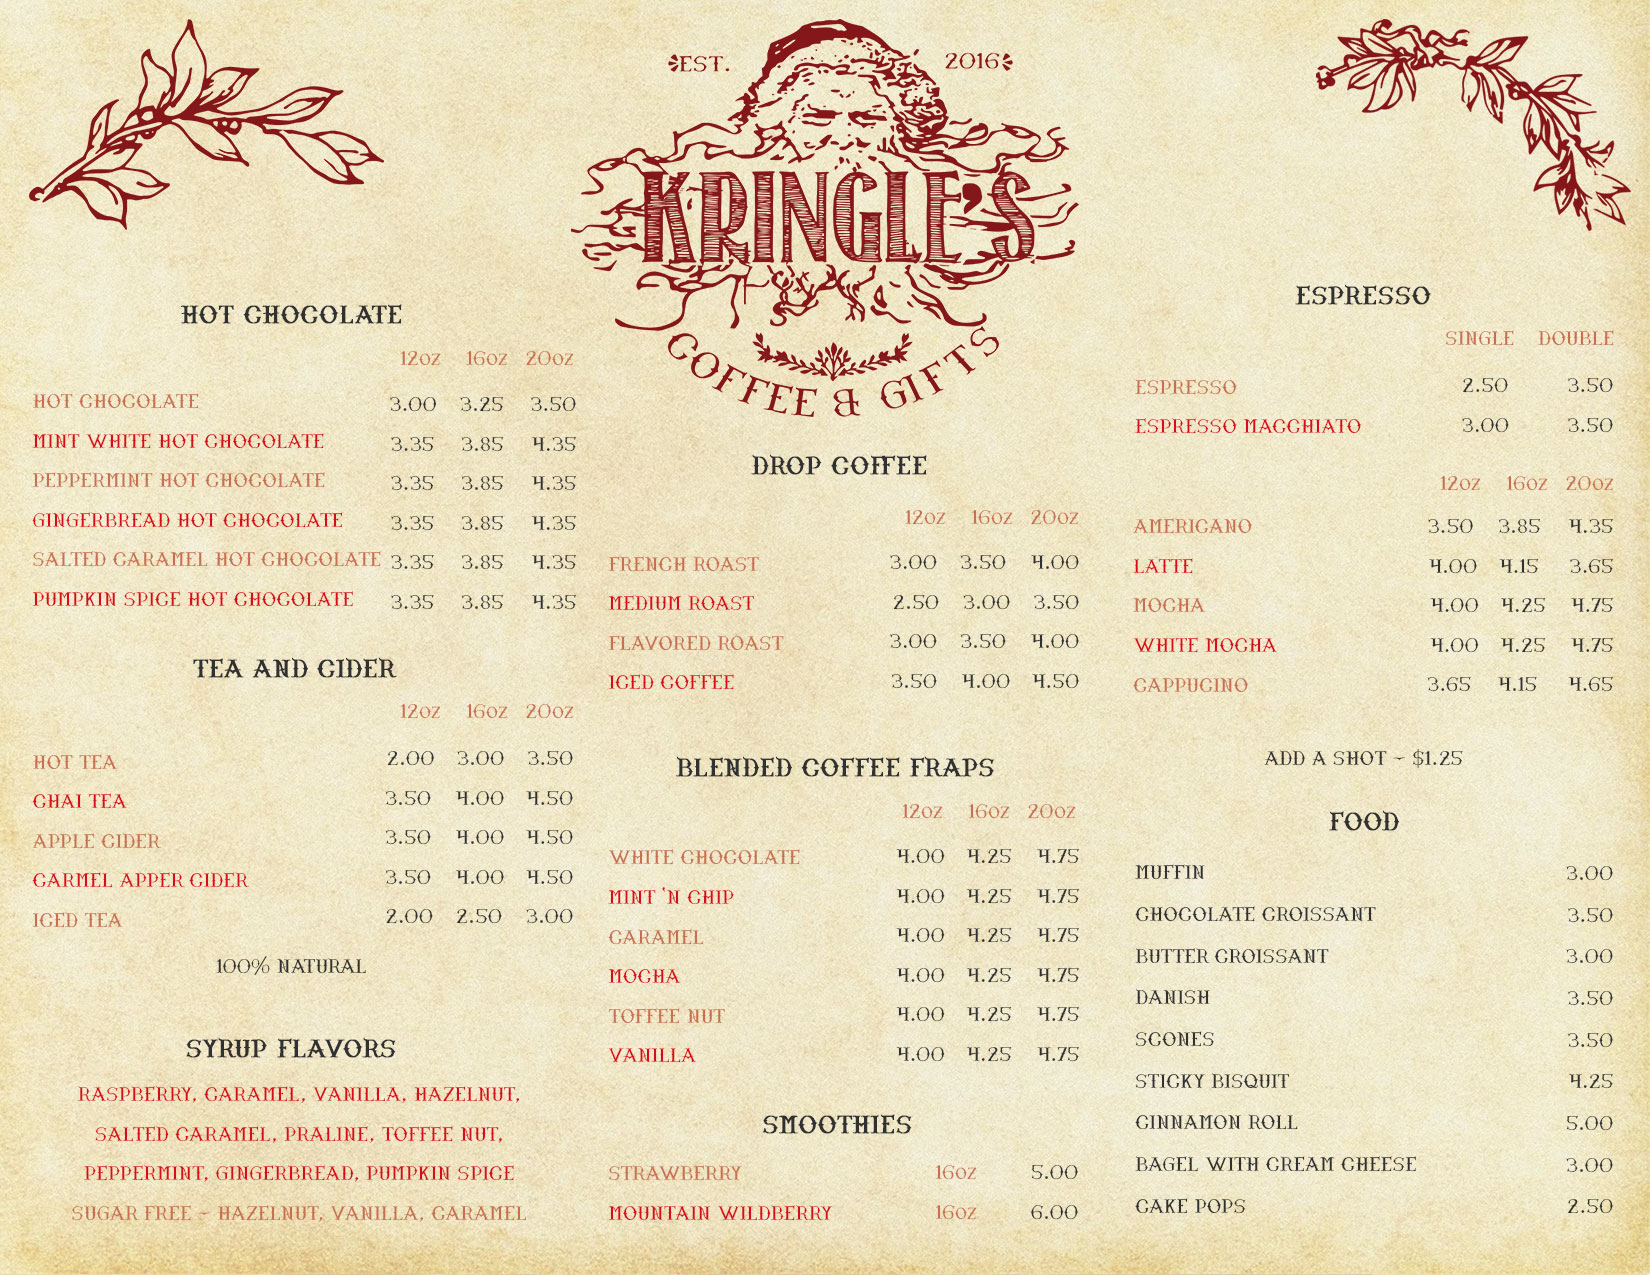 Kringles Coffee & Gifts Menu